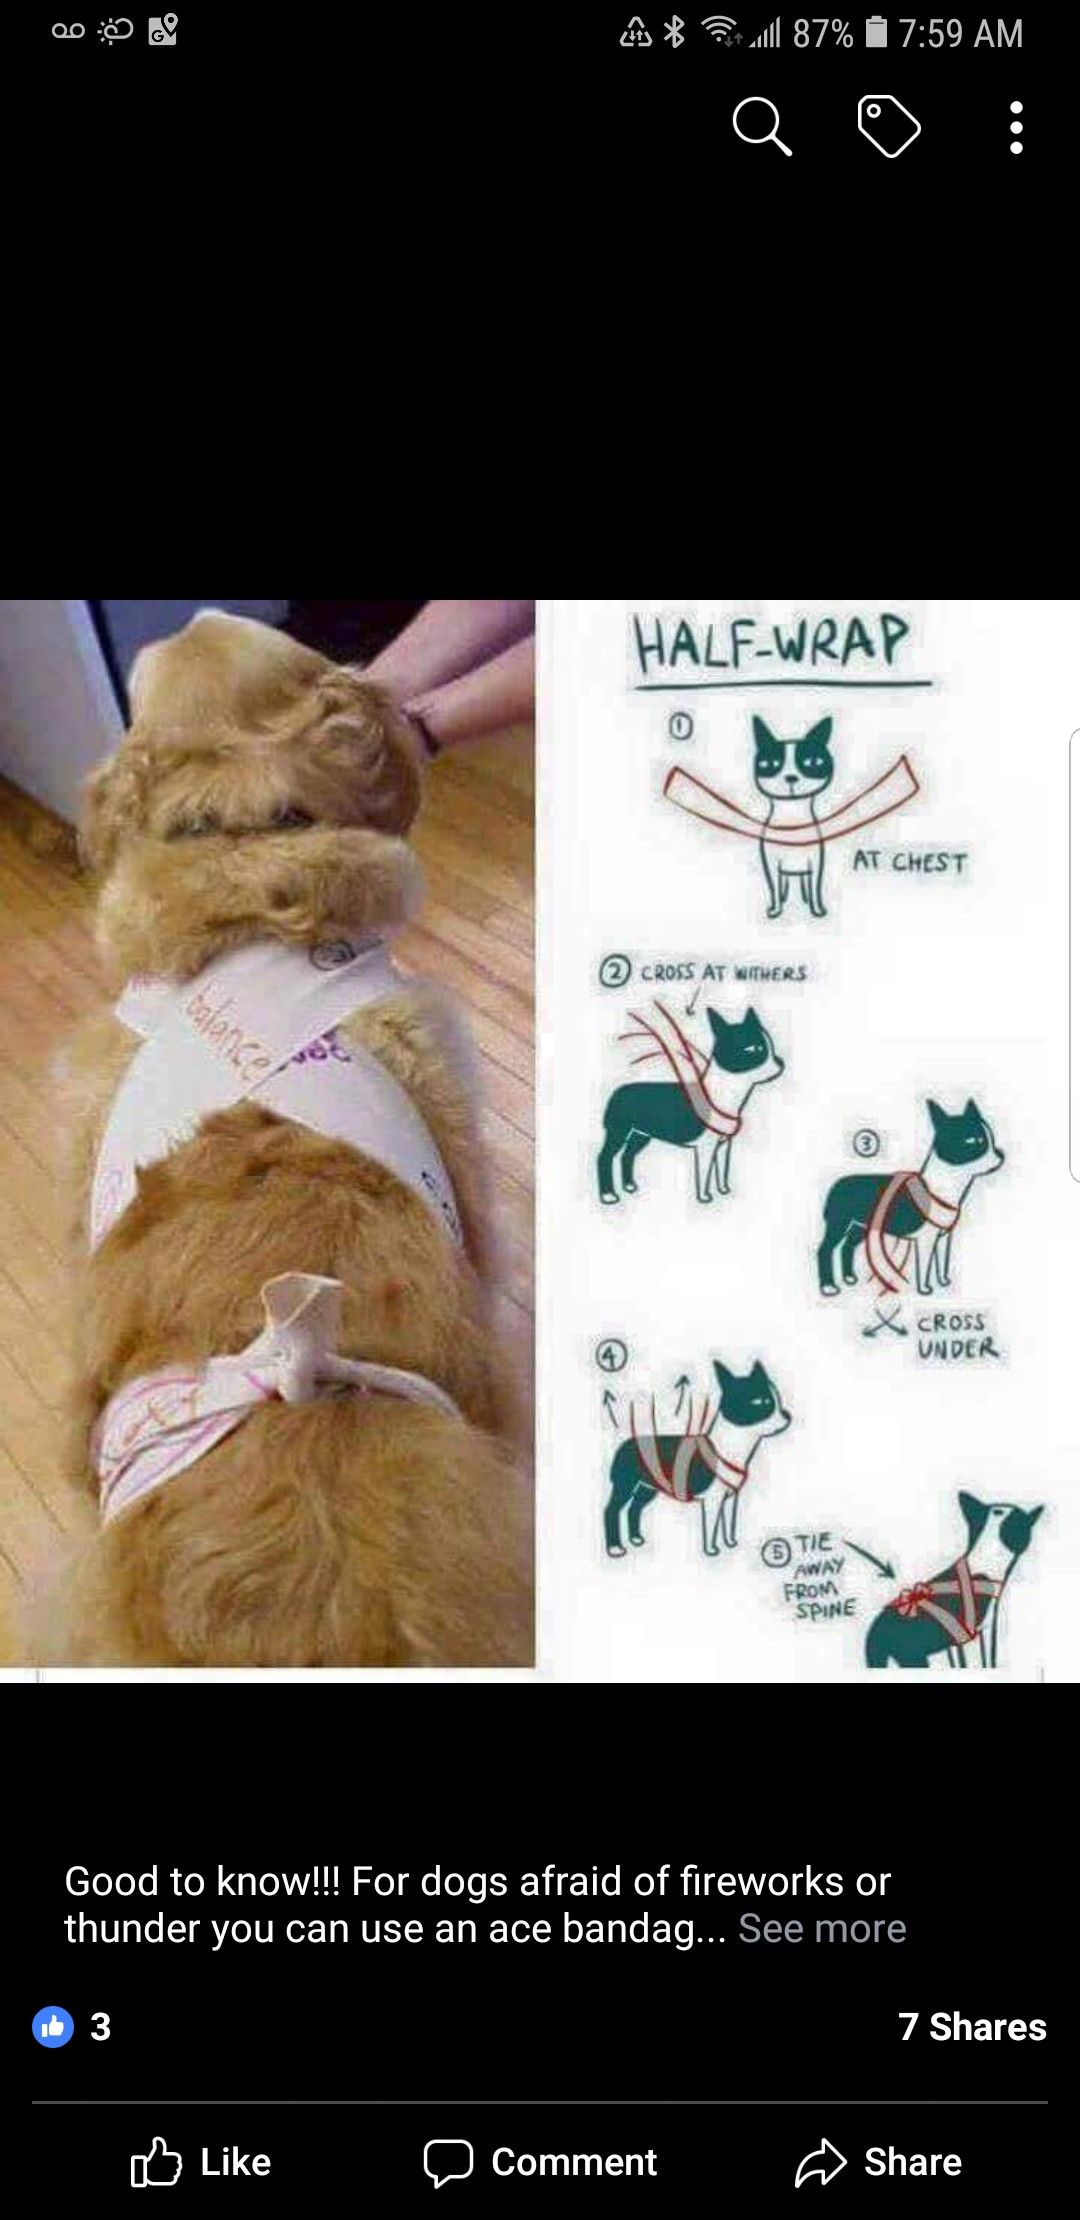 Pin by angela hellenbrand on pets Dog shirt diy, Dogs